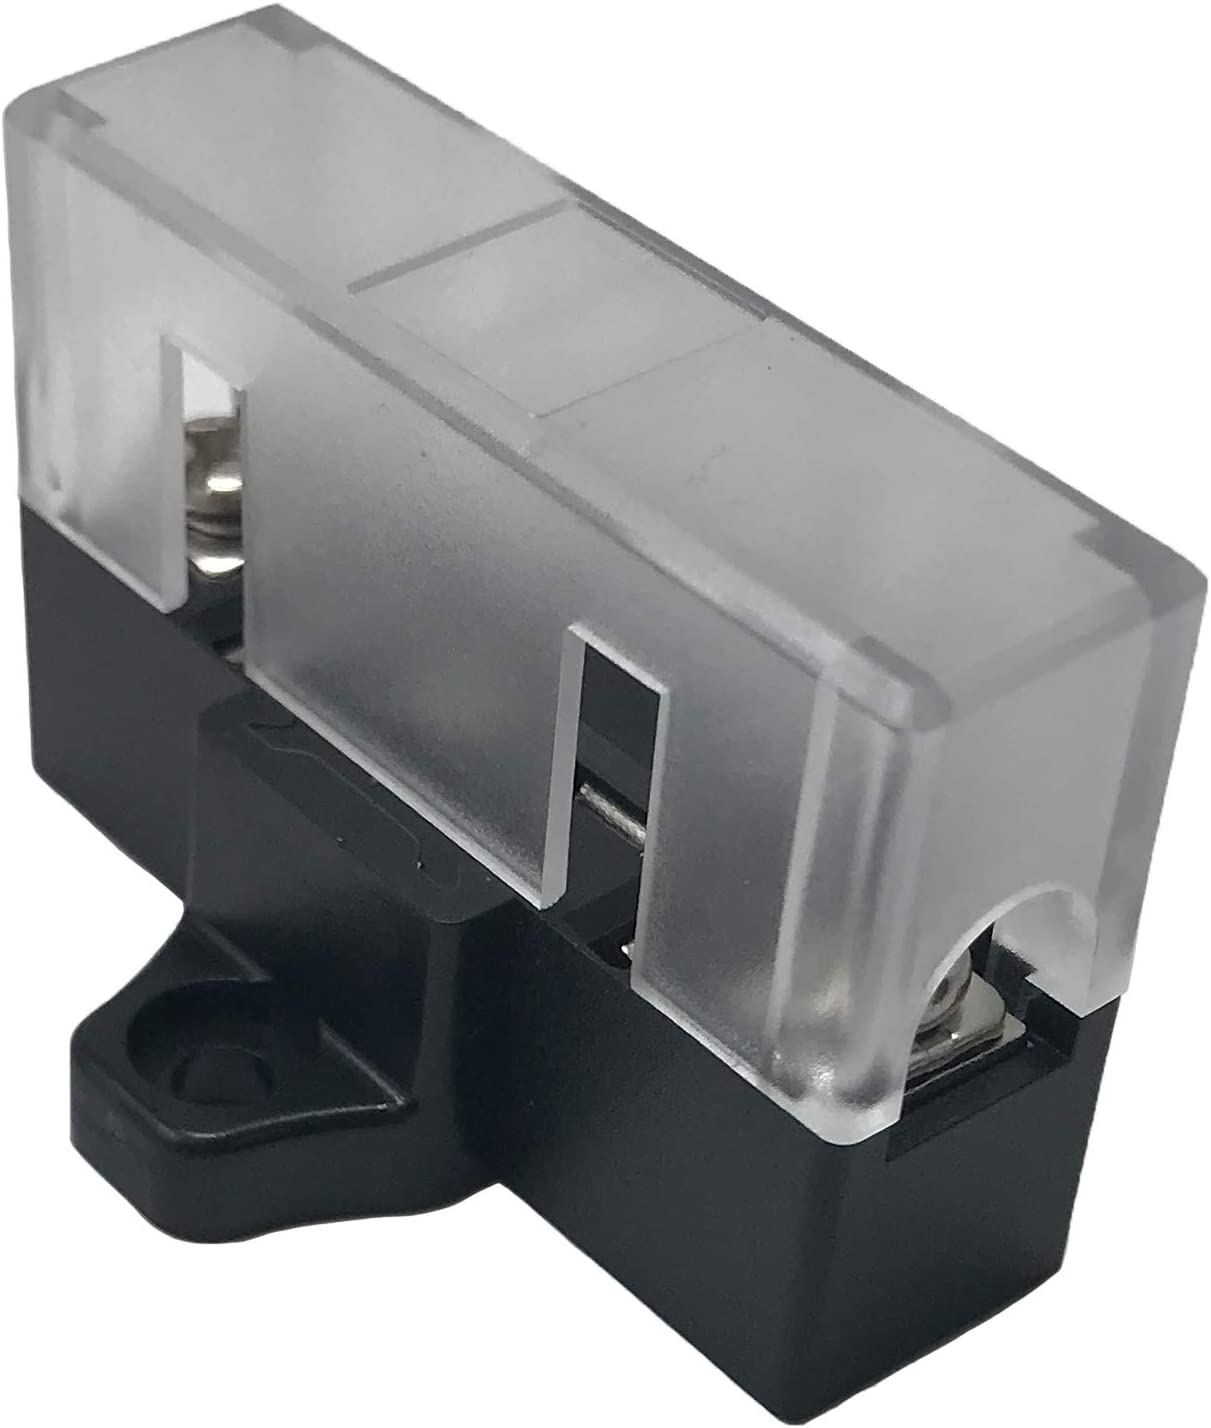 Automotive Marine Car Boat RV Stack-able Add-on In-line Fuse Holder Panel /& Distribution Block for ATO//ATC /& ATM//MIN Blade Fuses 3